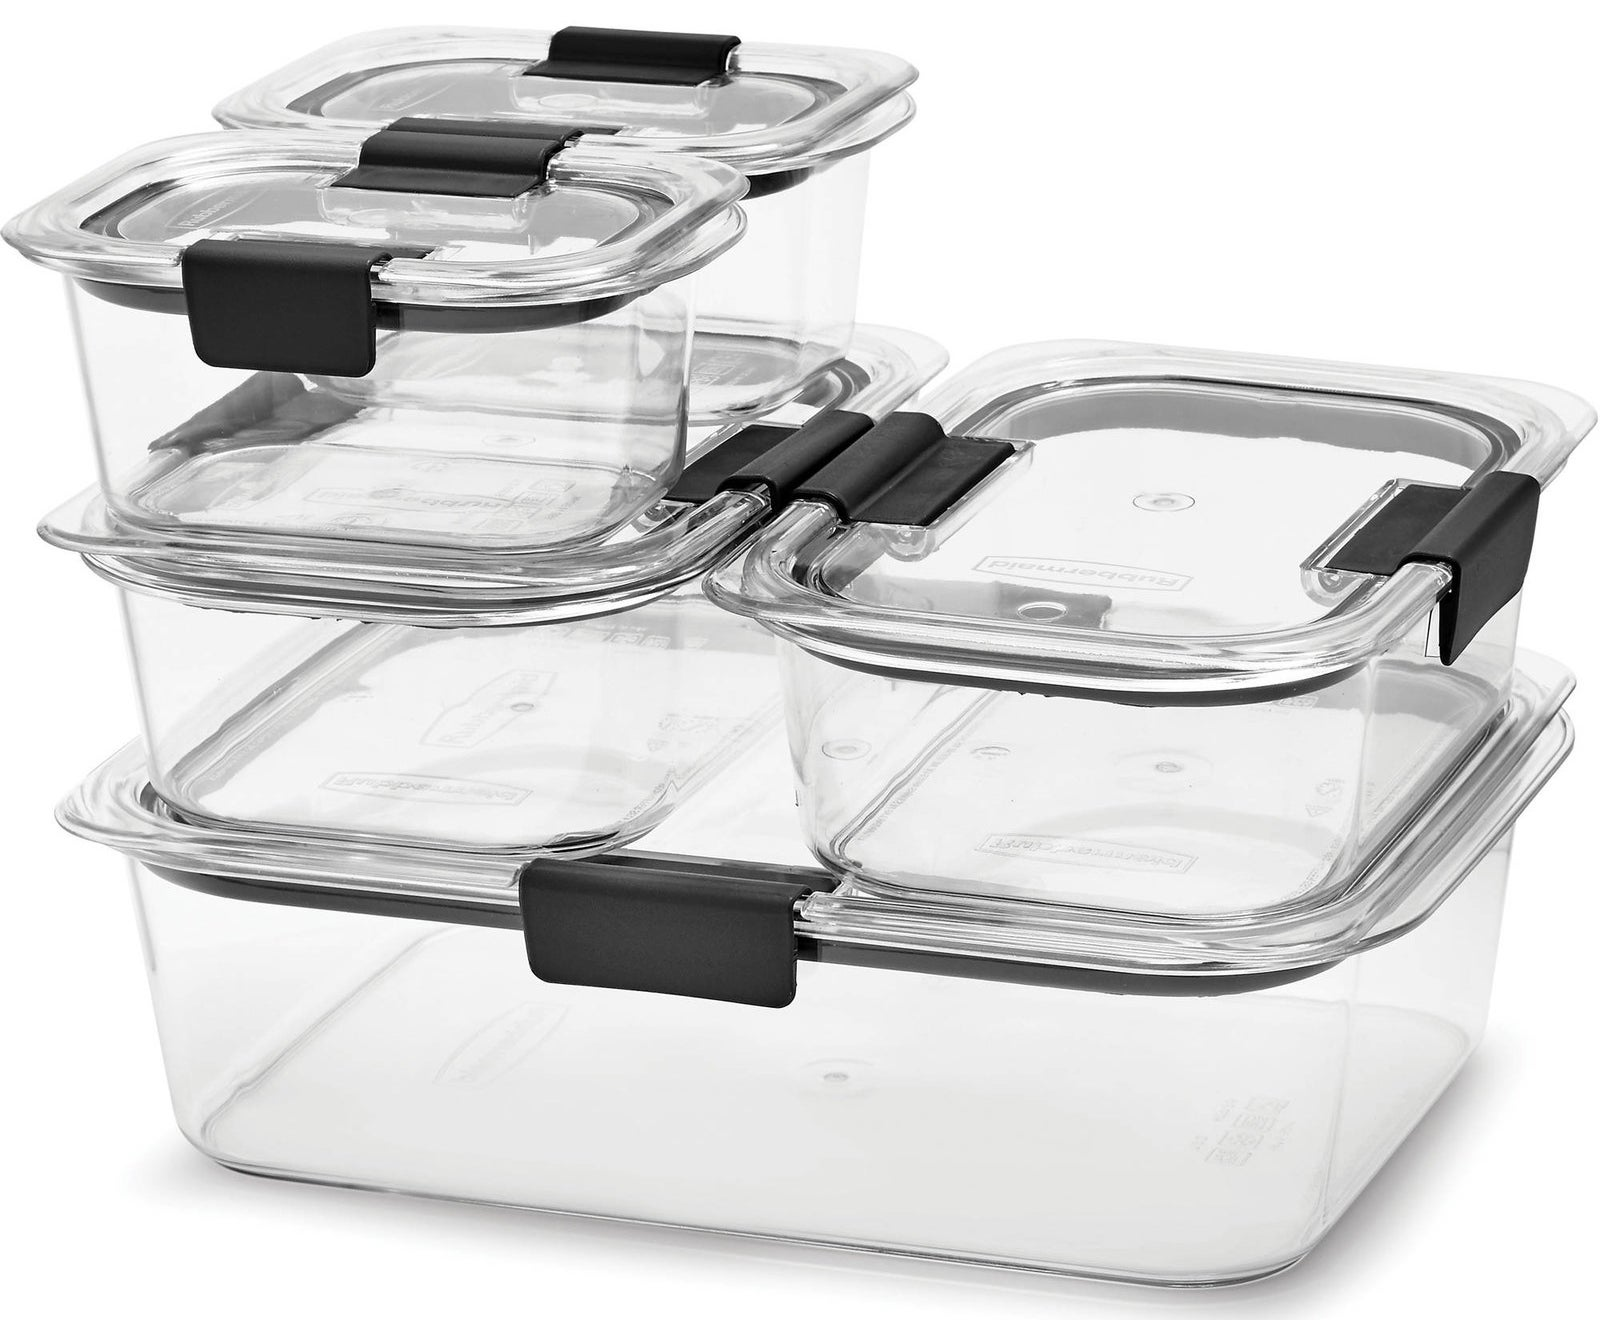 A 10-piece set with built-in steam vents so you can microwave food without removing the lid.